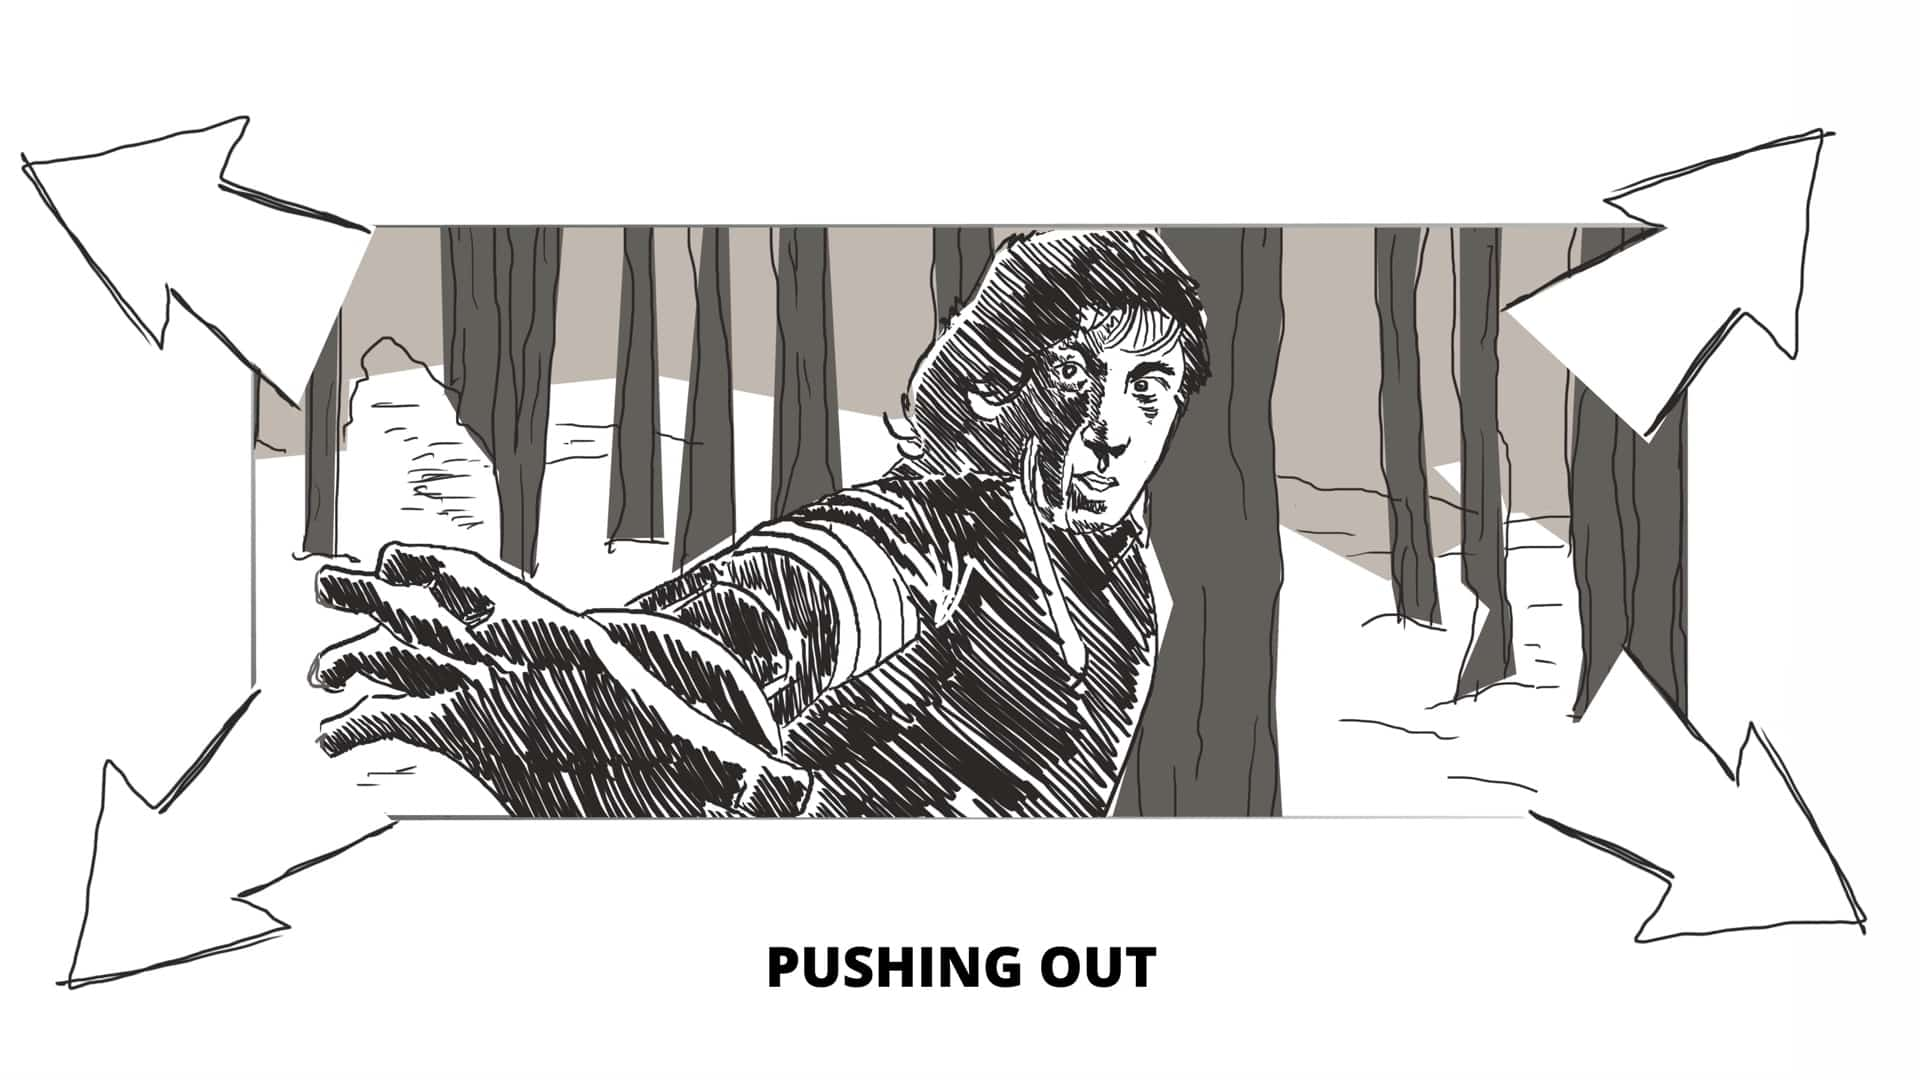 How to Make a Storyboard - Pushing Out - StudioBinder